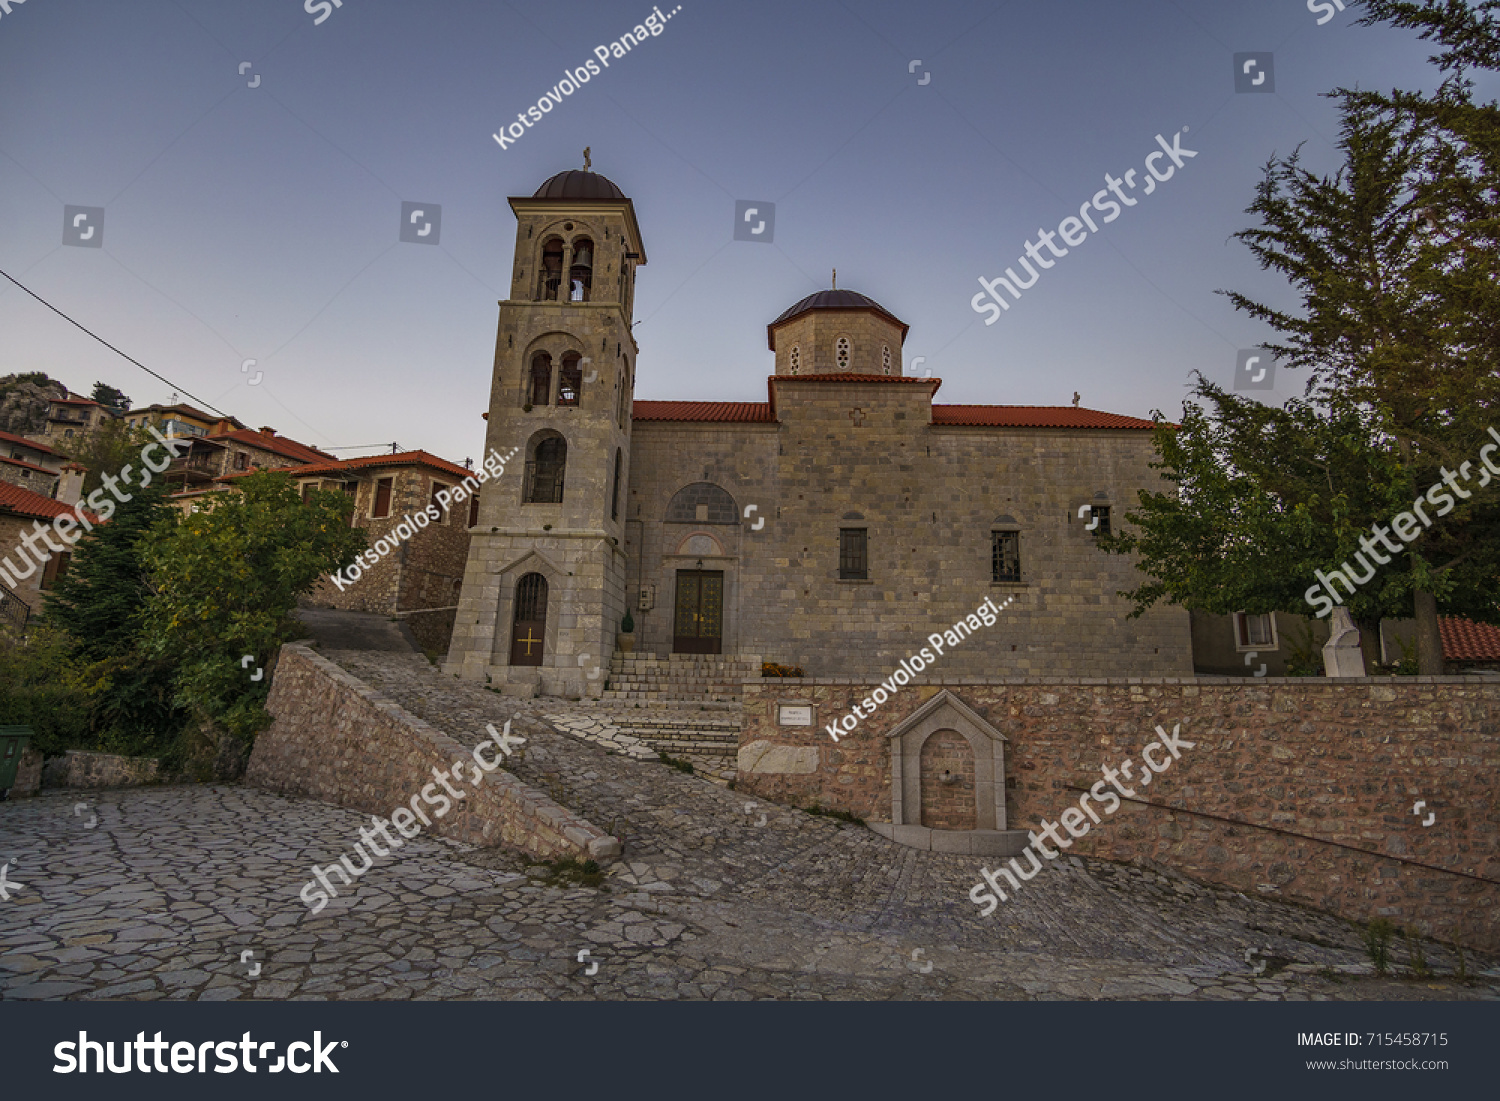 What was the typical medieval monastery Famous Orthodox churches